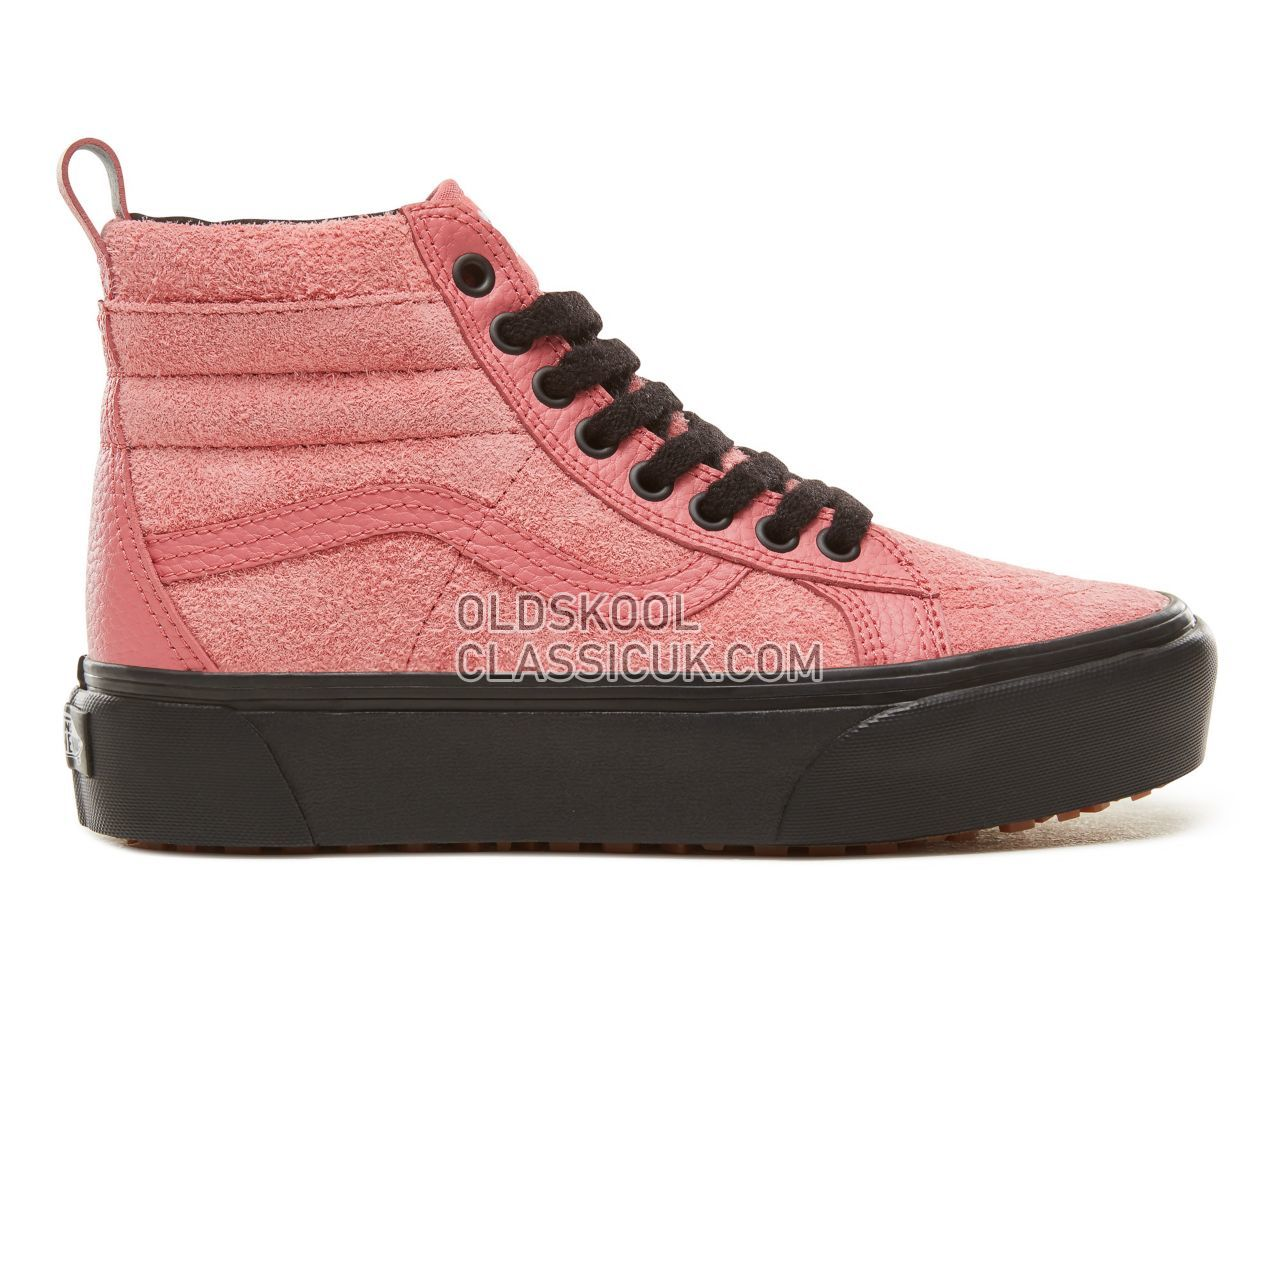 Vans Sk8-Hi Platform MTE Sneakers Womens (Mte) Desert Rose/Black VA3TKOUCE Shoes